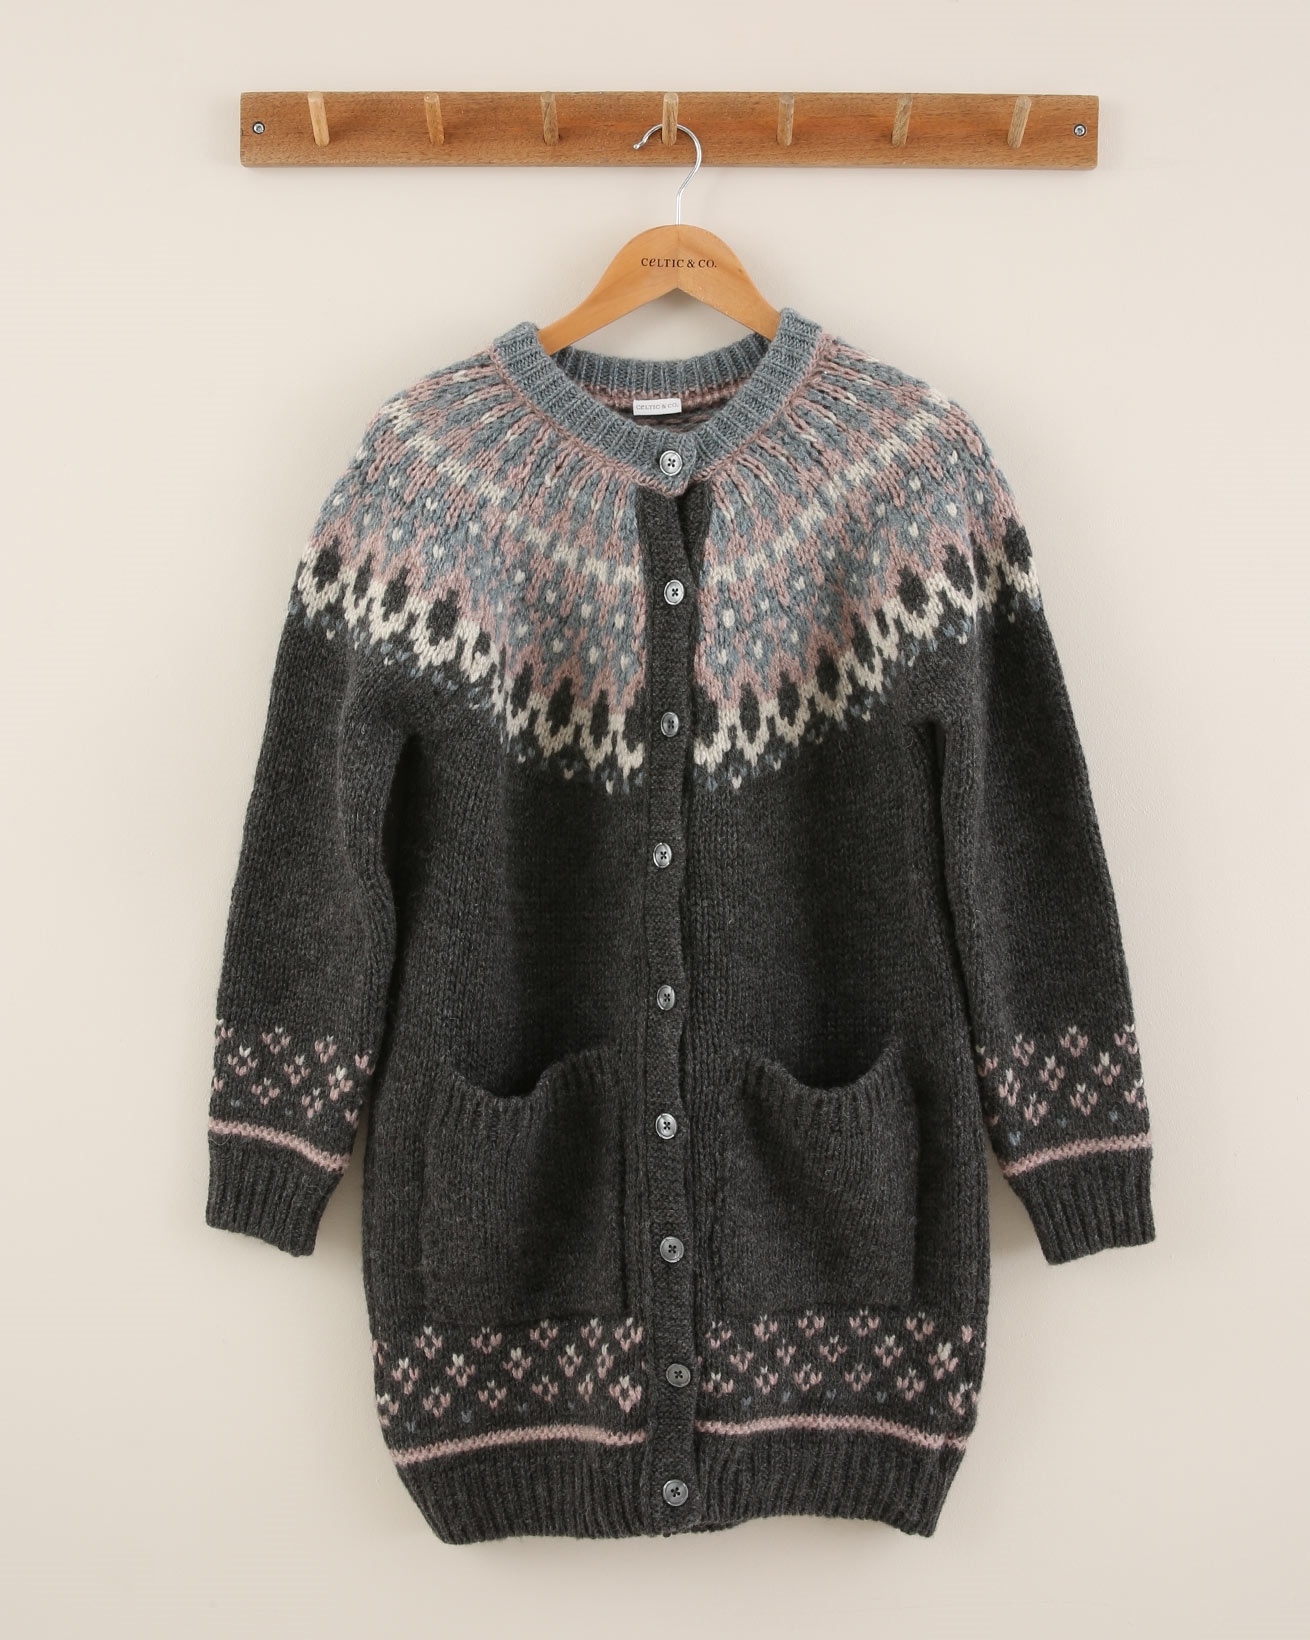 Fair Isle Yoke Cardigan - Size Small - Charcoal - 1948